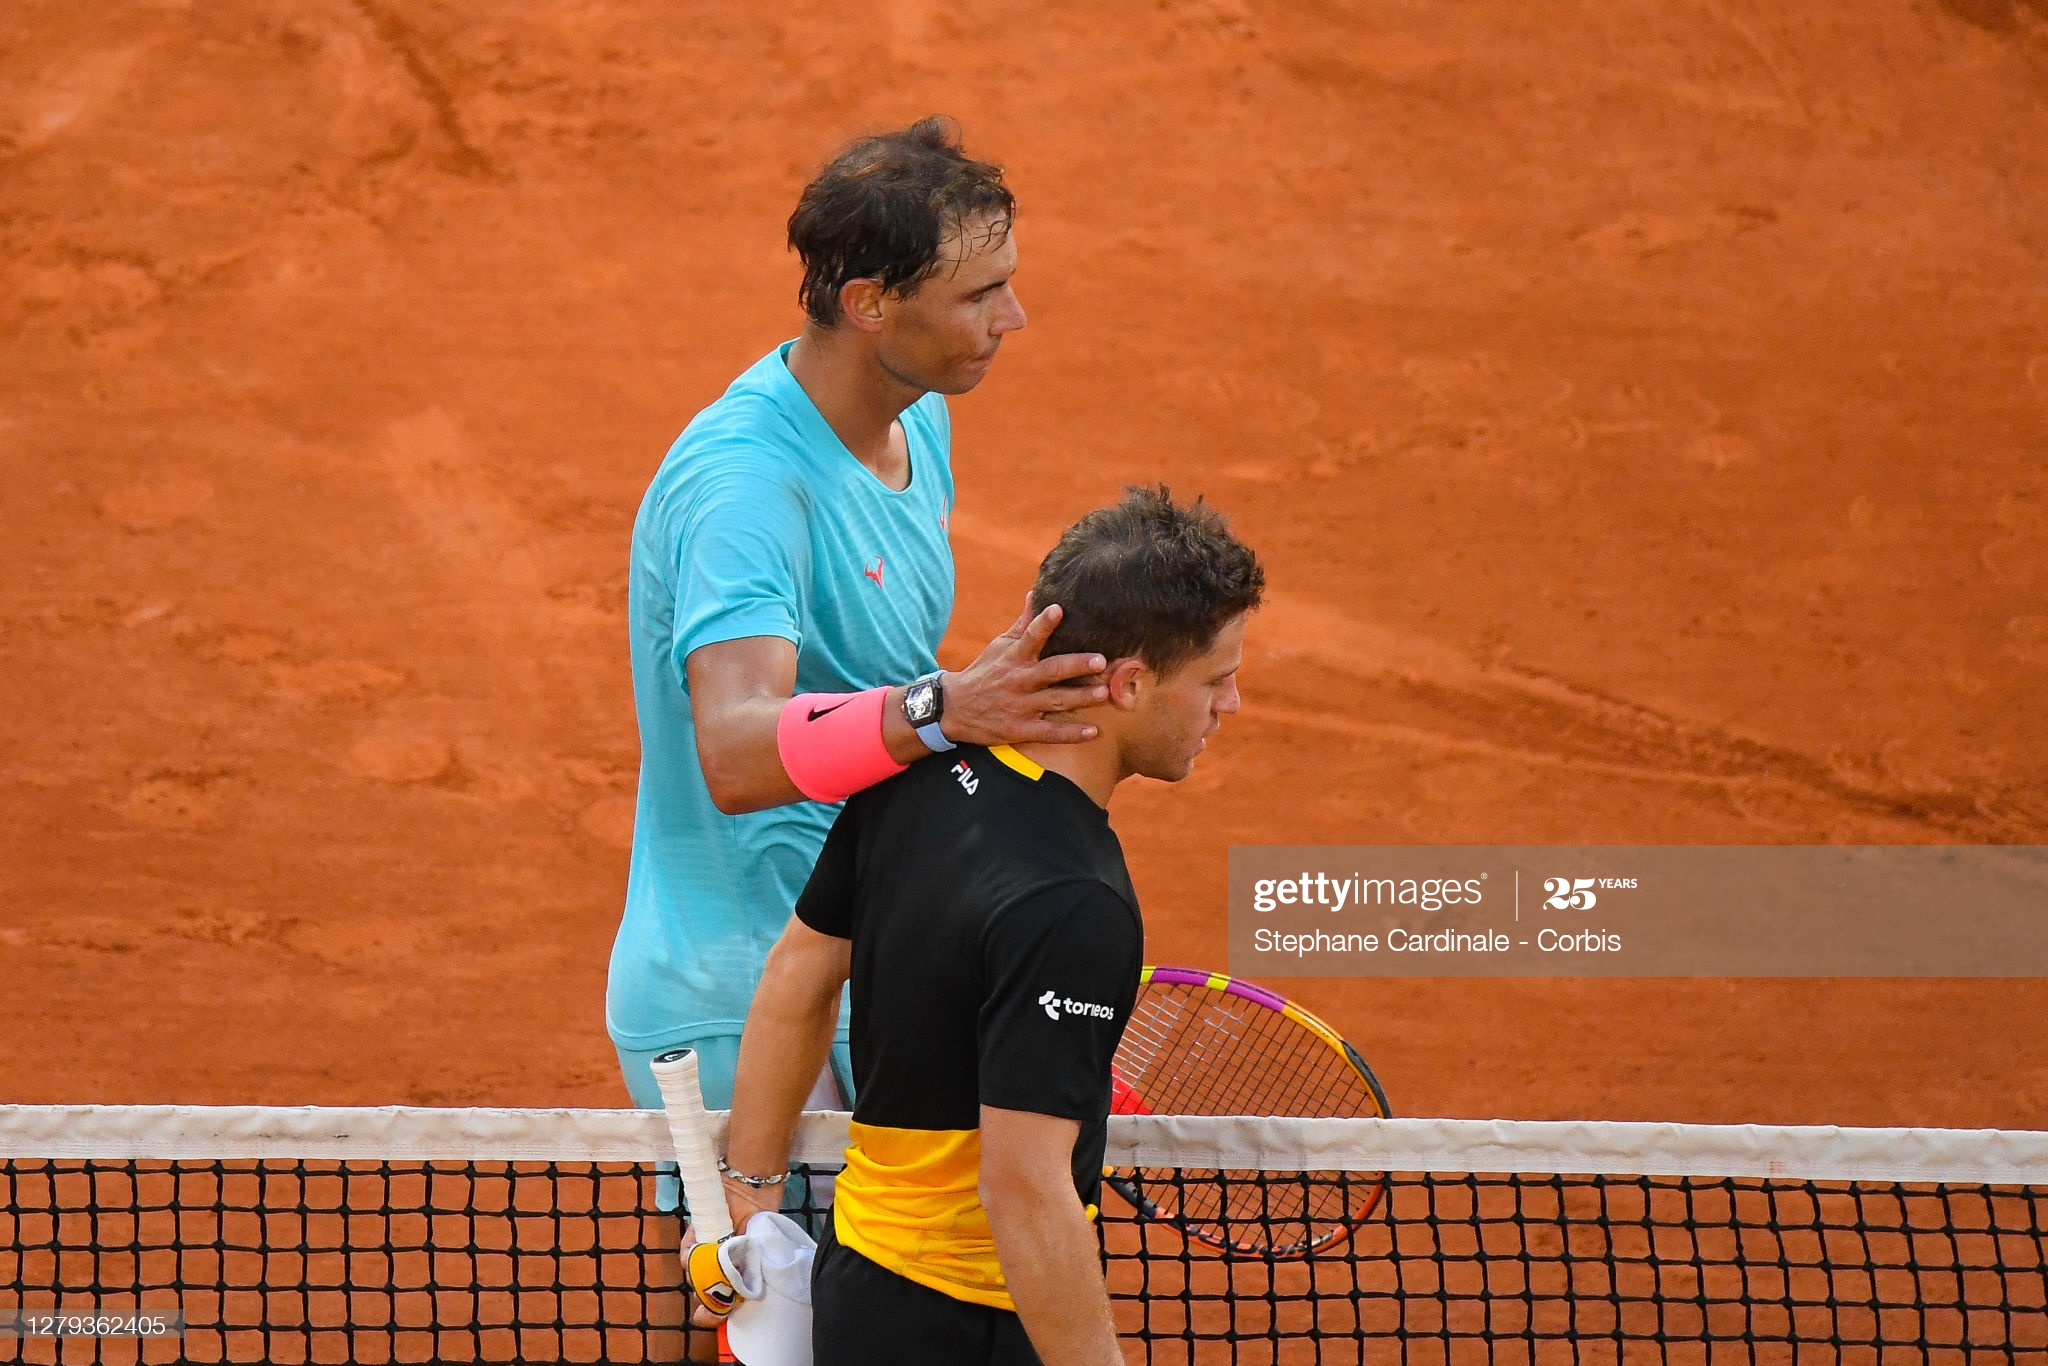 rafa and schwartzman french open 2020